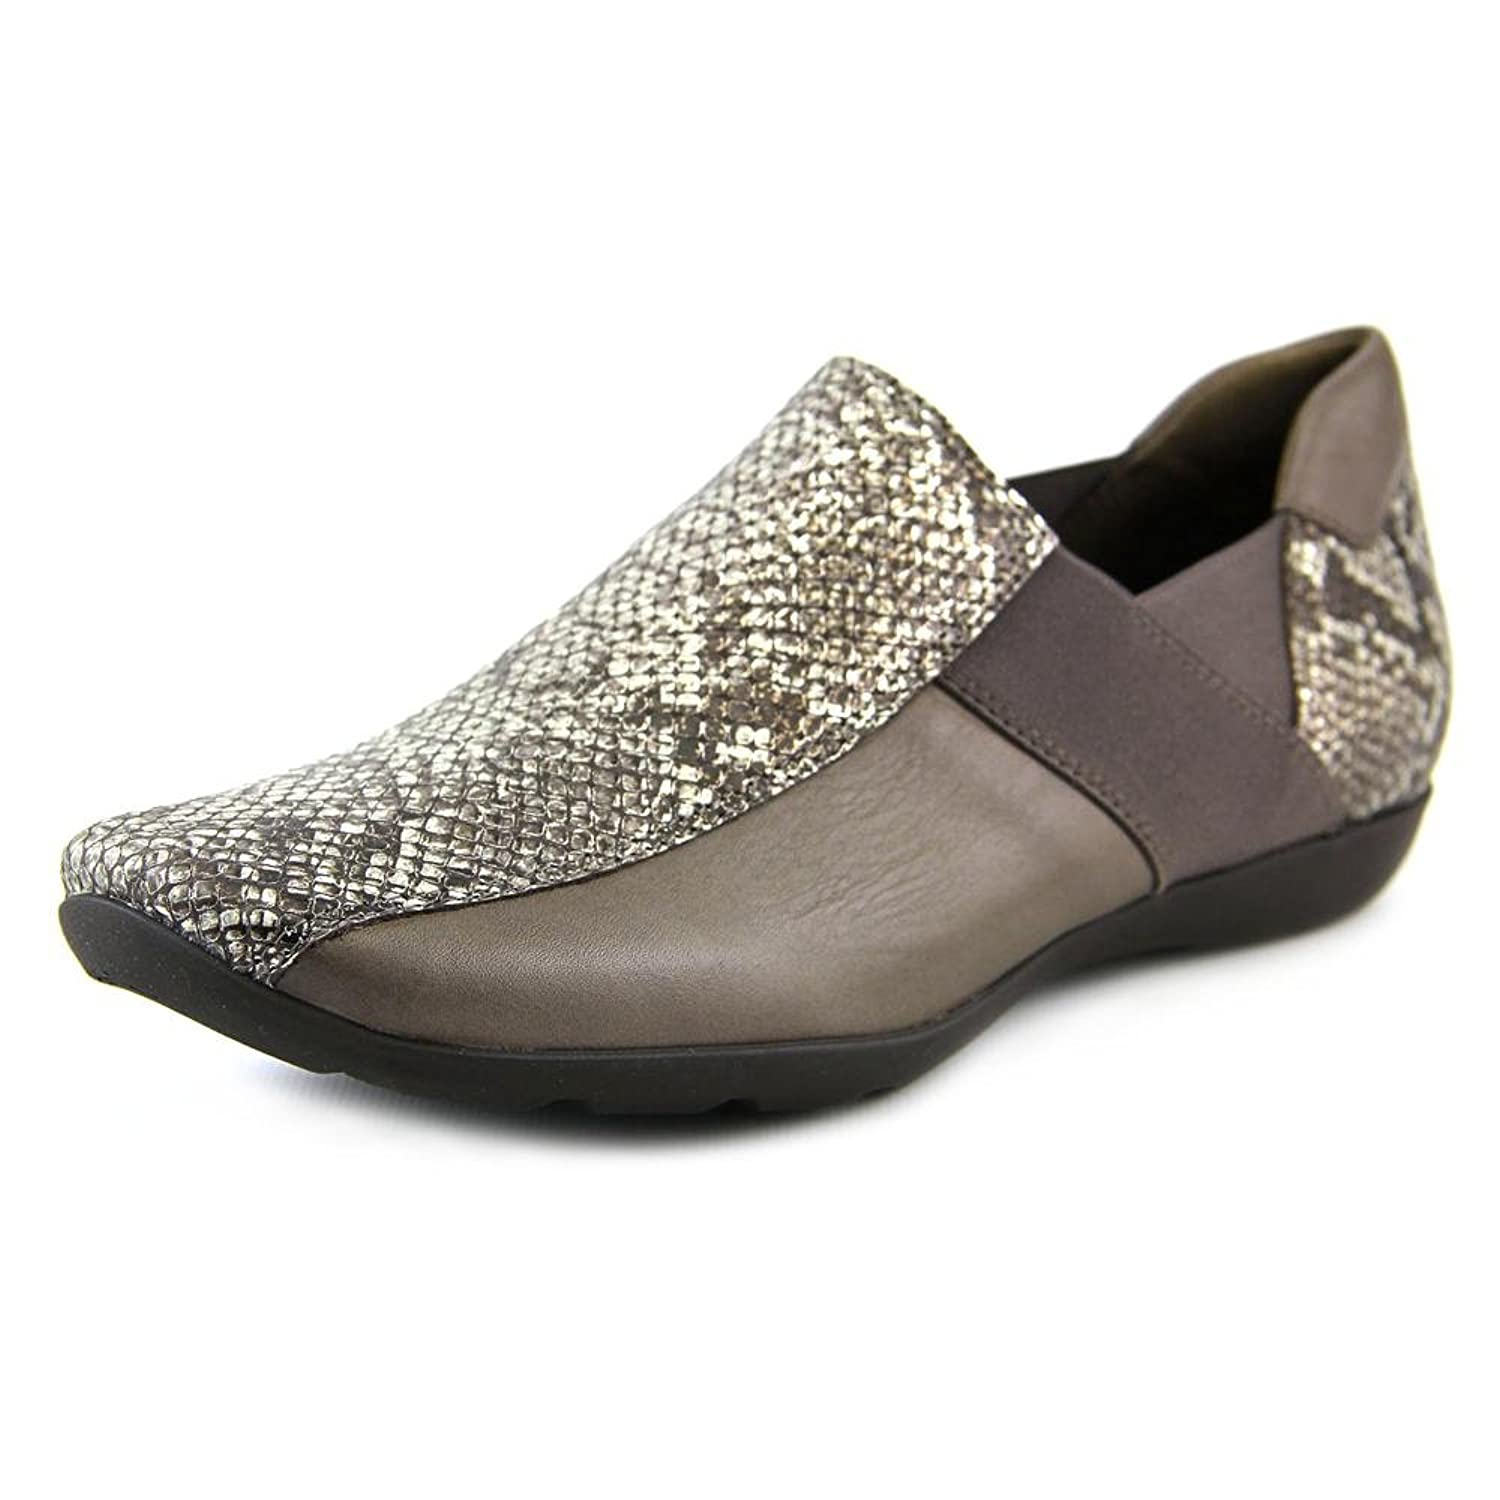 The Most Popular Sesto Meucci Florel For Women Selling Well